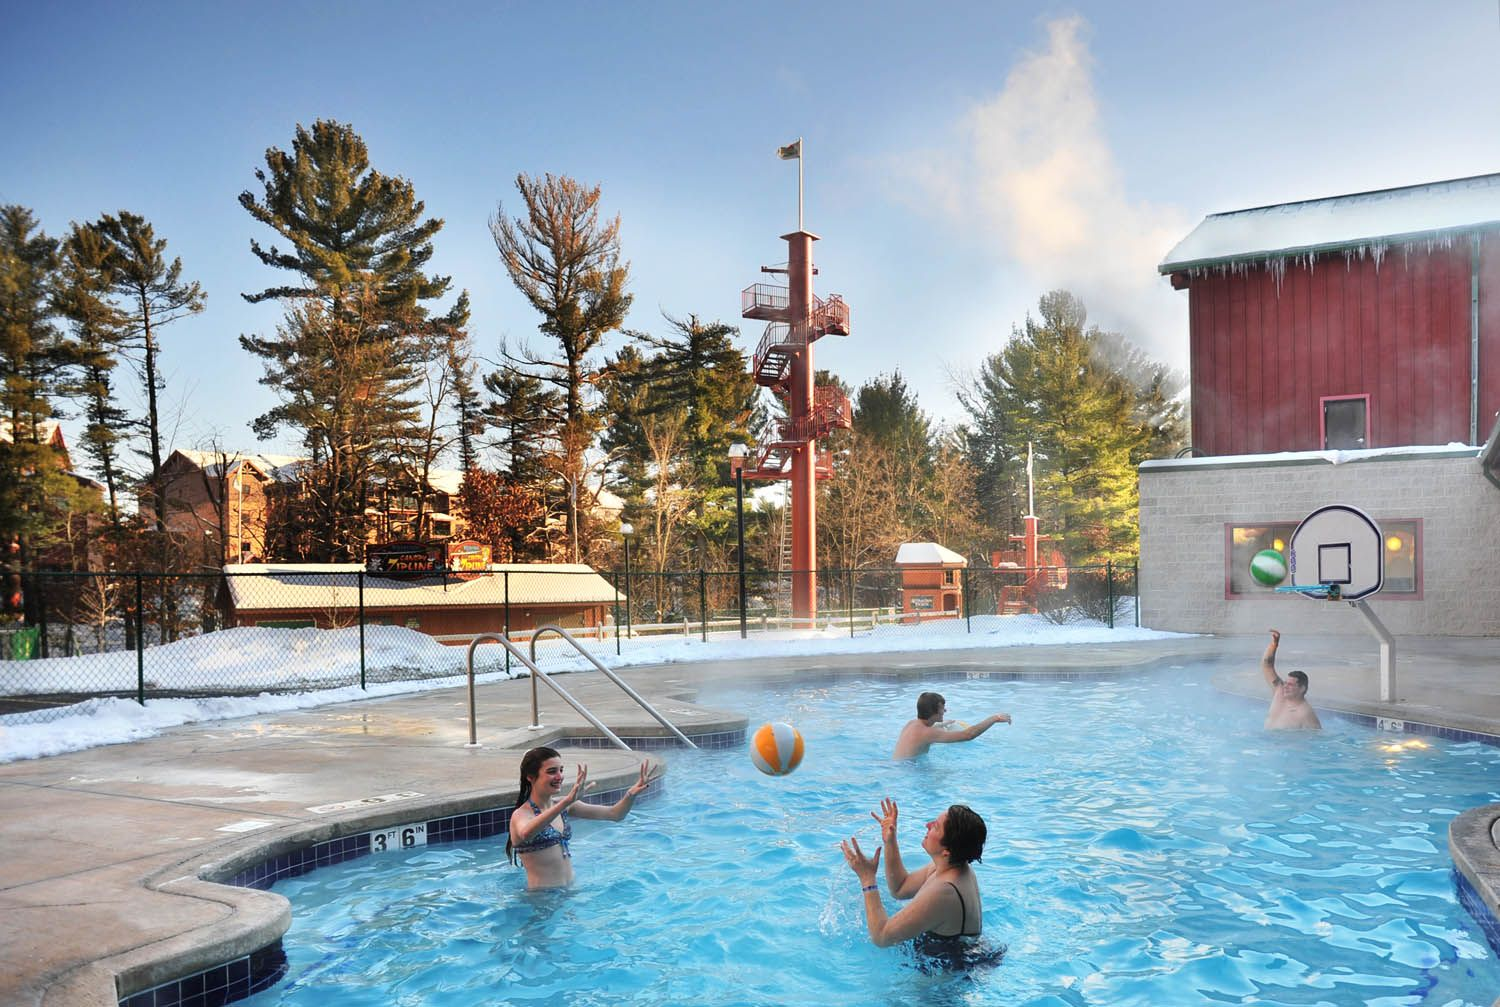 Swim And Play Outside During The Winter Indoor Outdoor Pool At Klondike Kavern Indoor Waterpark Wilderness Resort Water Park Wilderness Resort Wisconsin Dells